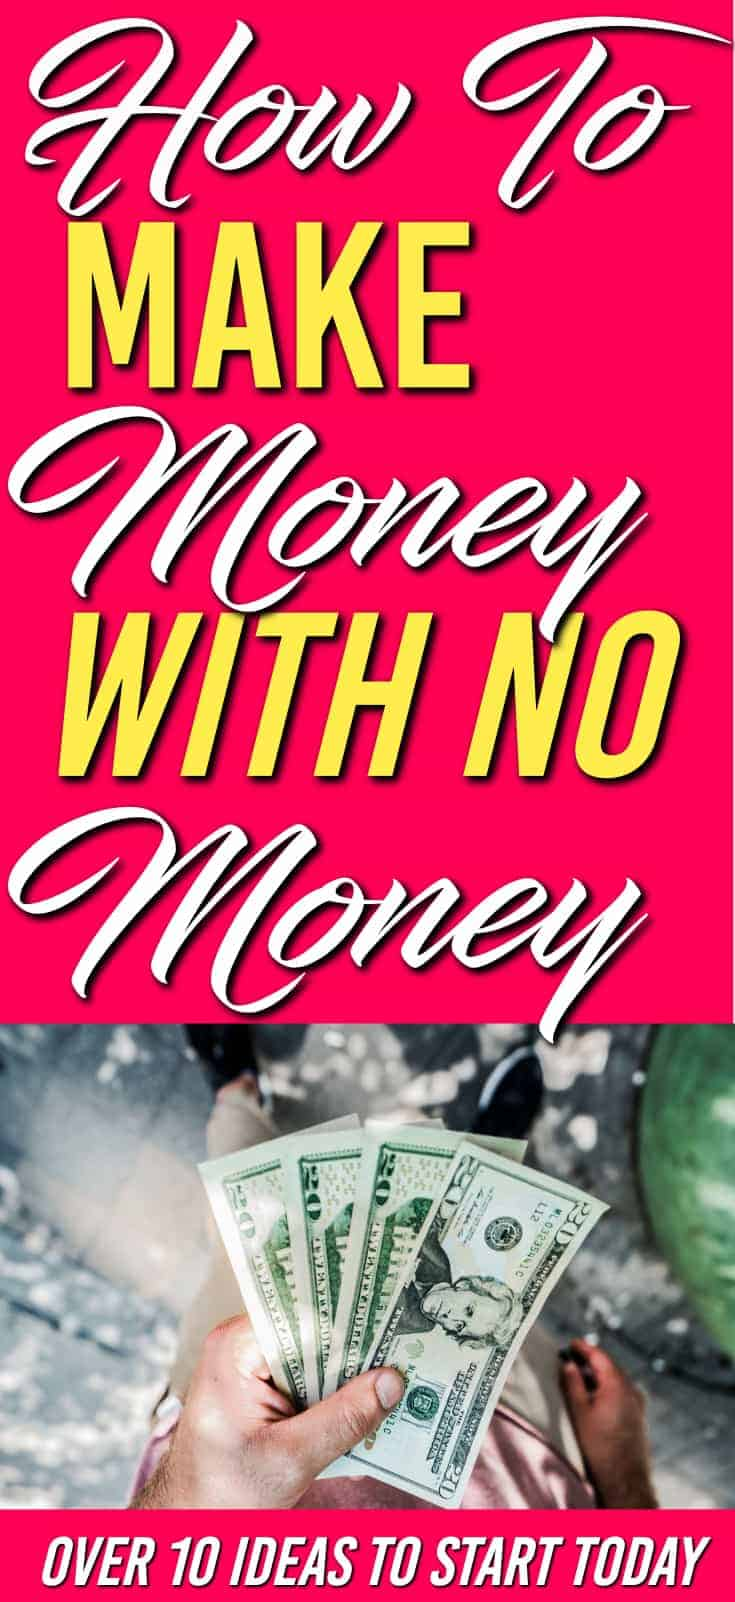 Need ways to make money using what you already have? There 10+ ways show you how to make extra with no money. | Make extra money |